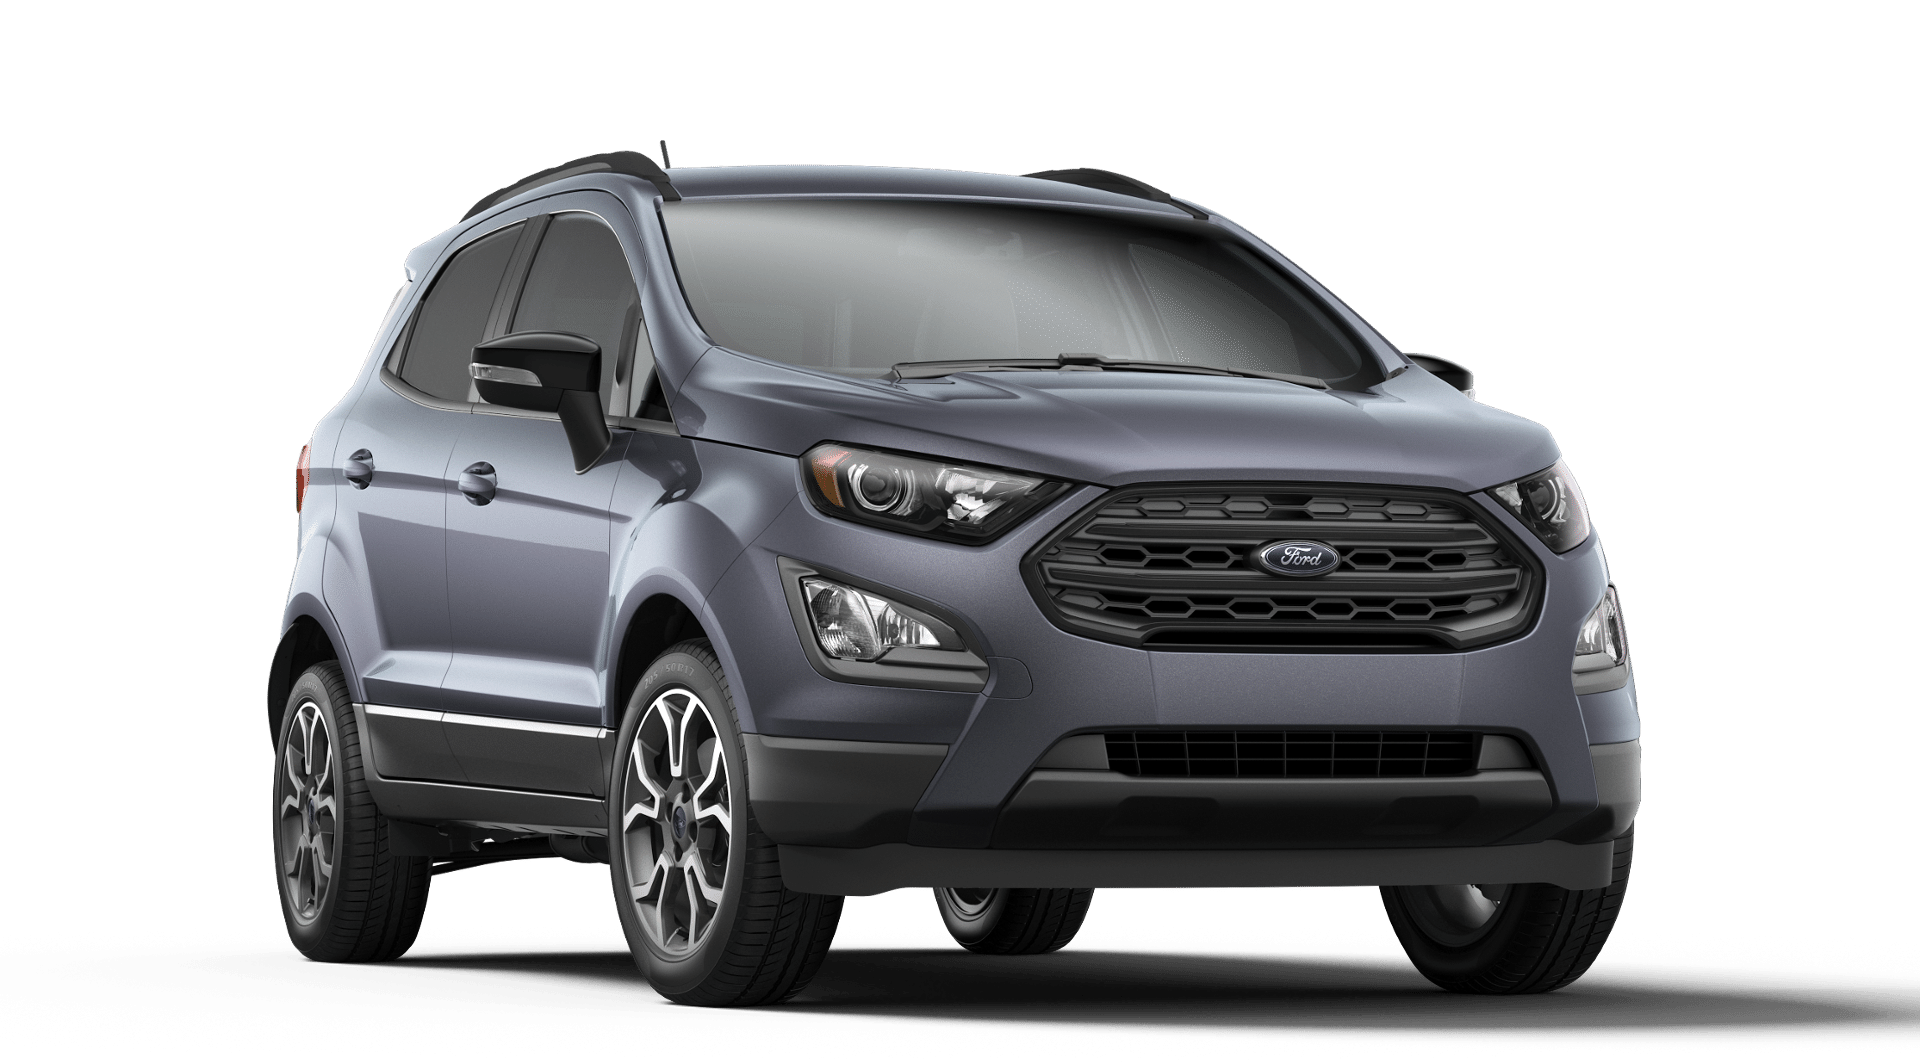 2019-Ford-EcoSport-Smoke-Exterior-Color_o